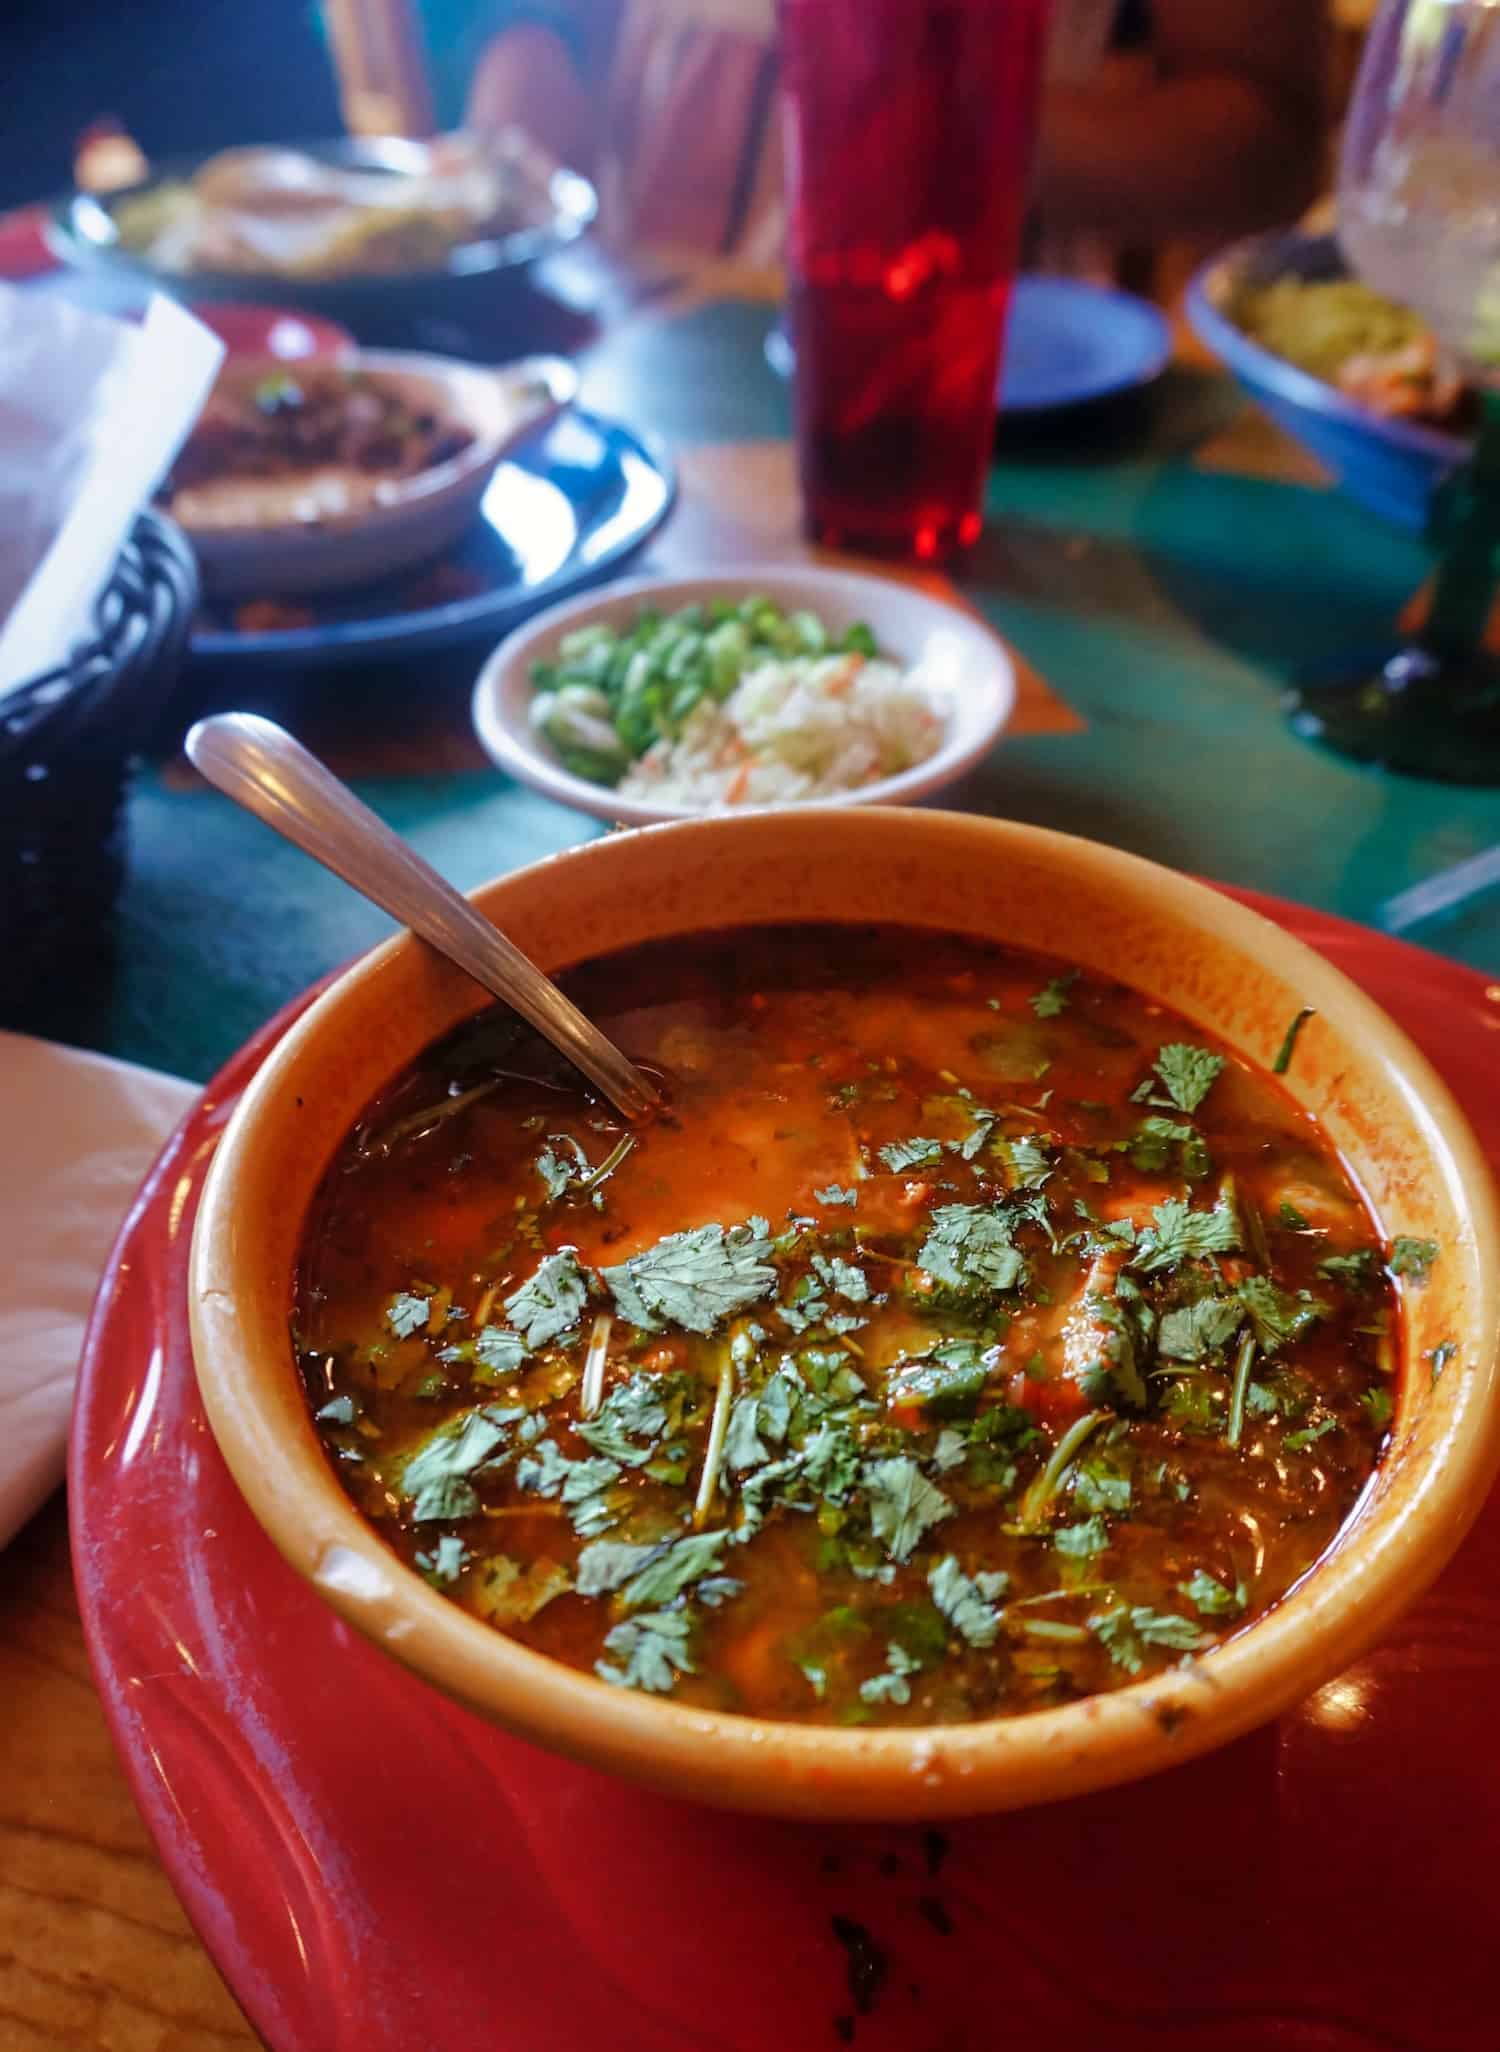 Sedona Food - Mexican